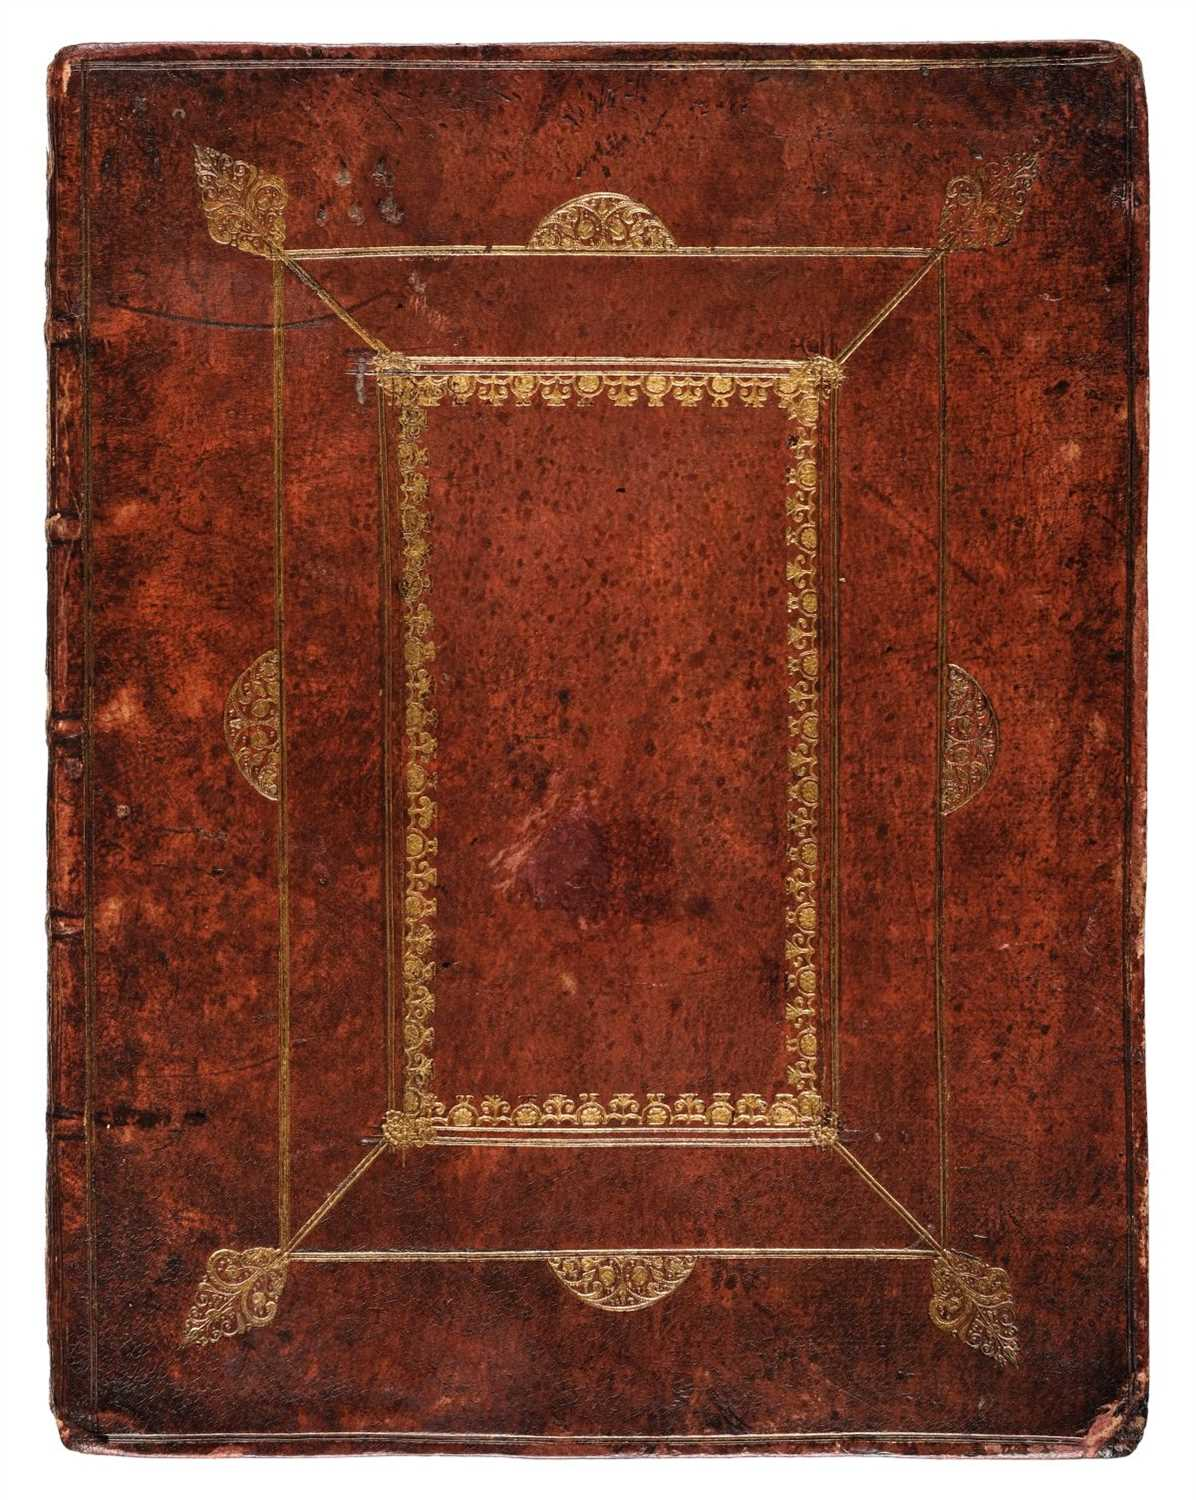 114 - Manuscript Cookery Book. An early receipt book, circa 1700